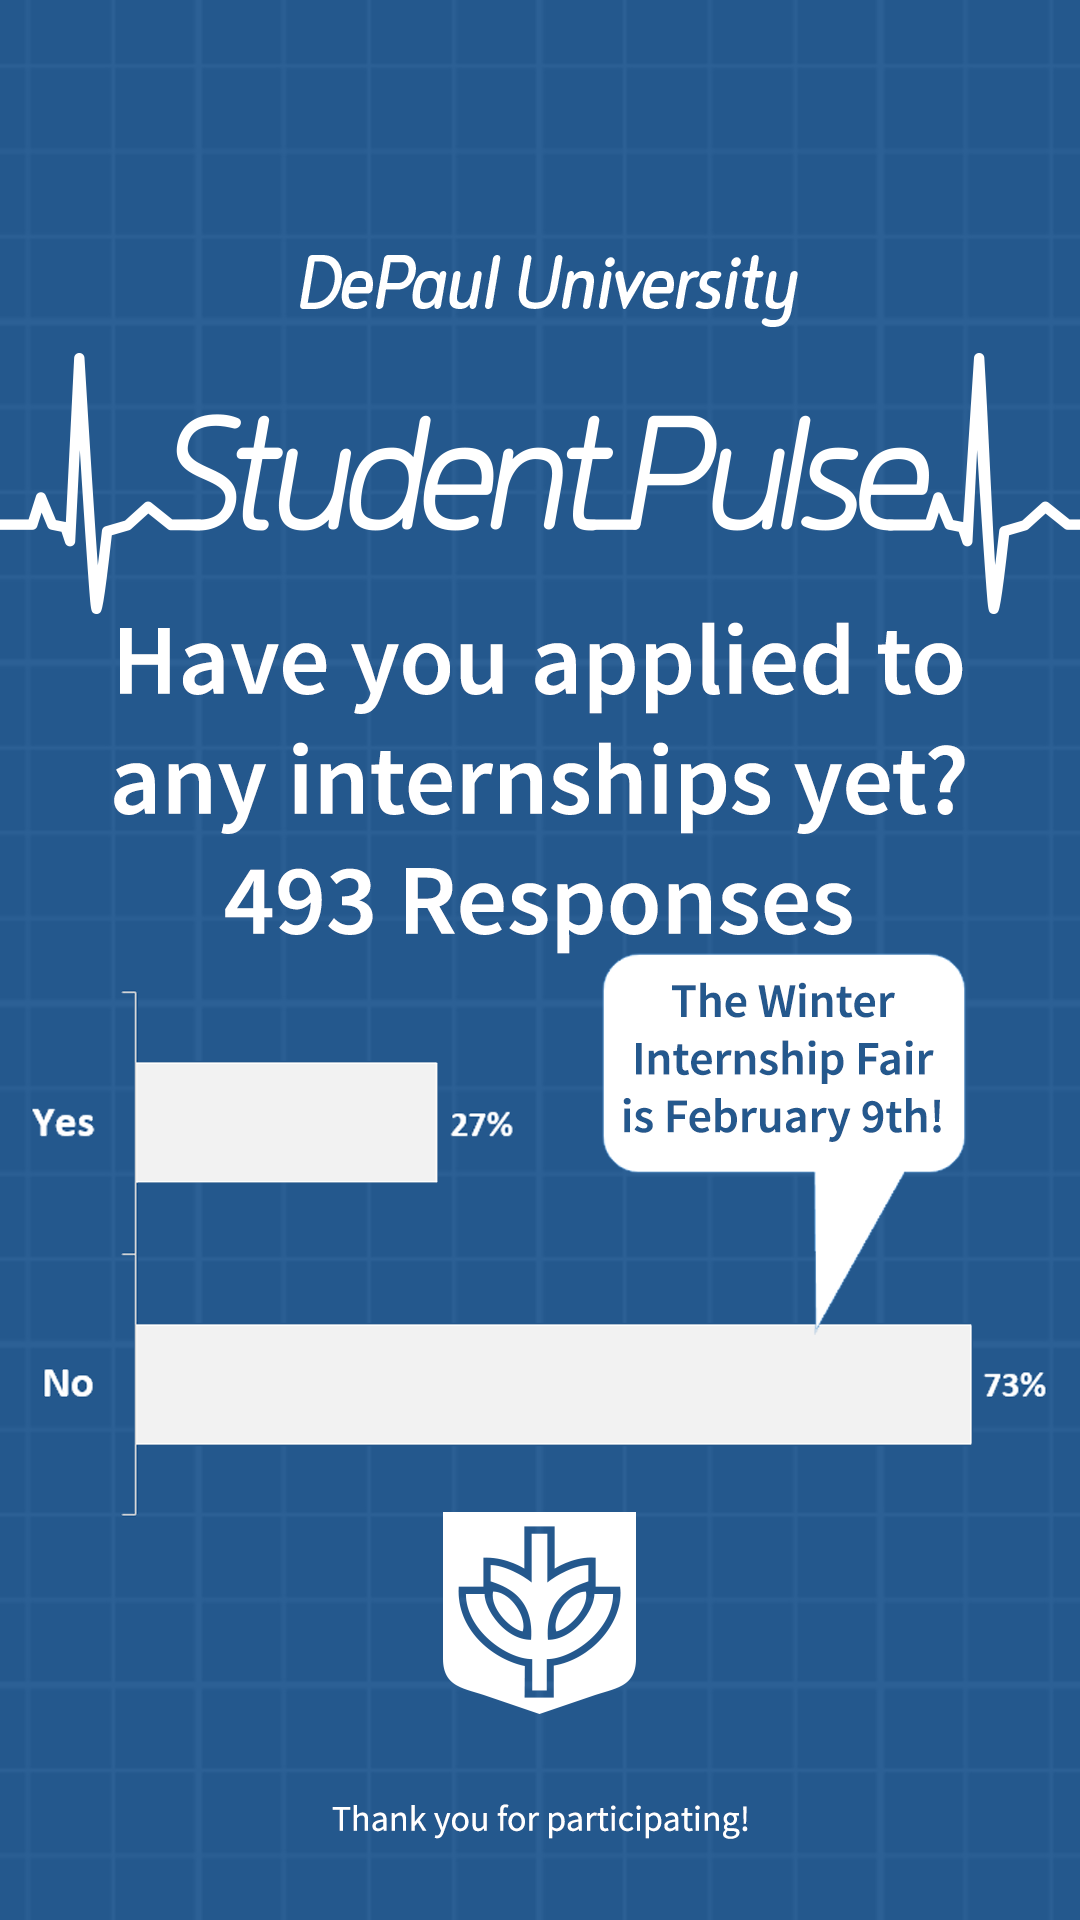 Have you applied to any internships yet?